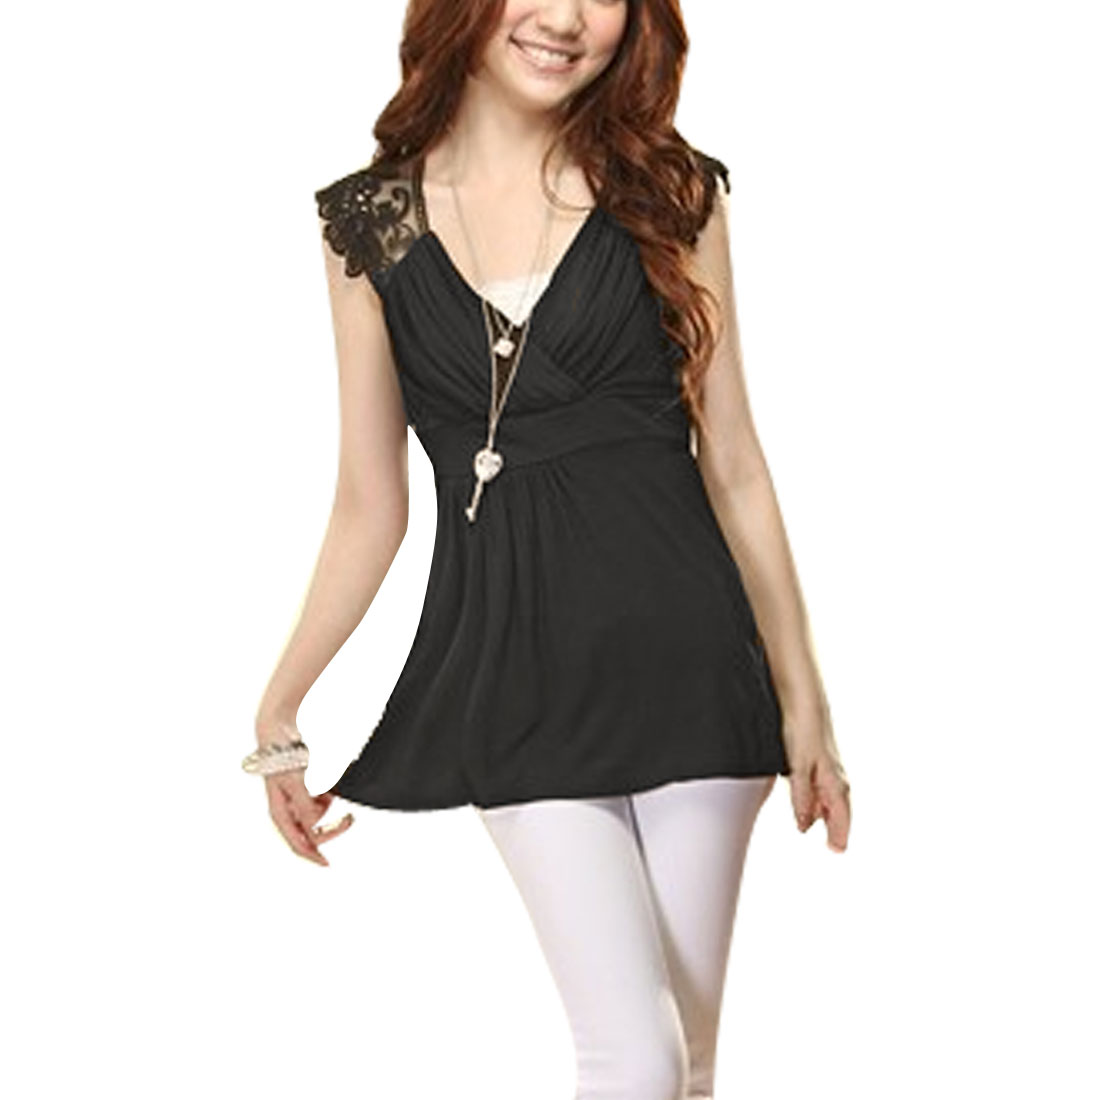 Black Cross V Neck Sleeveless Pullover Stretchy Shirt XS for Women